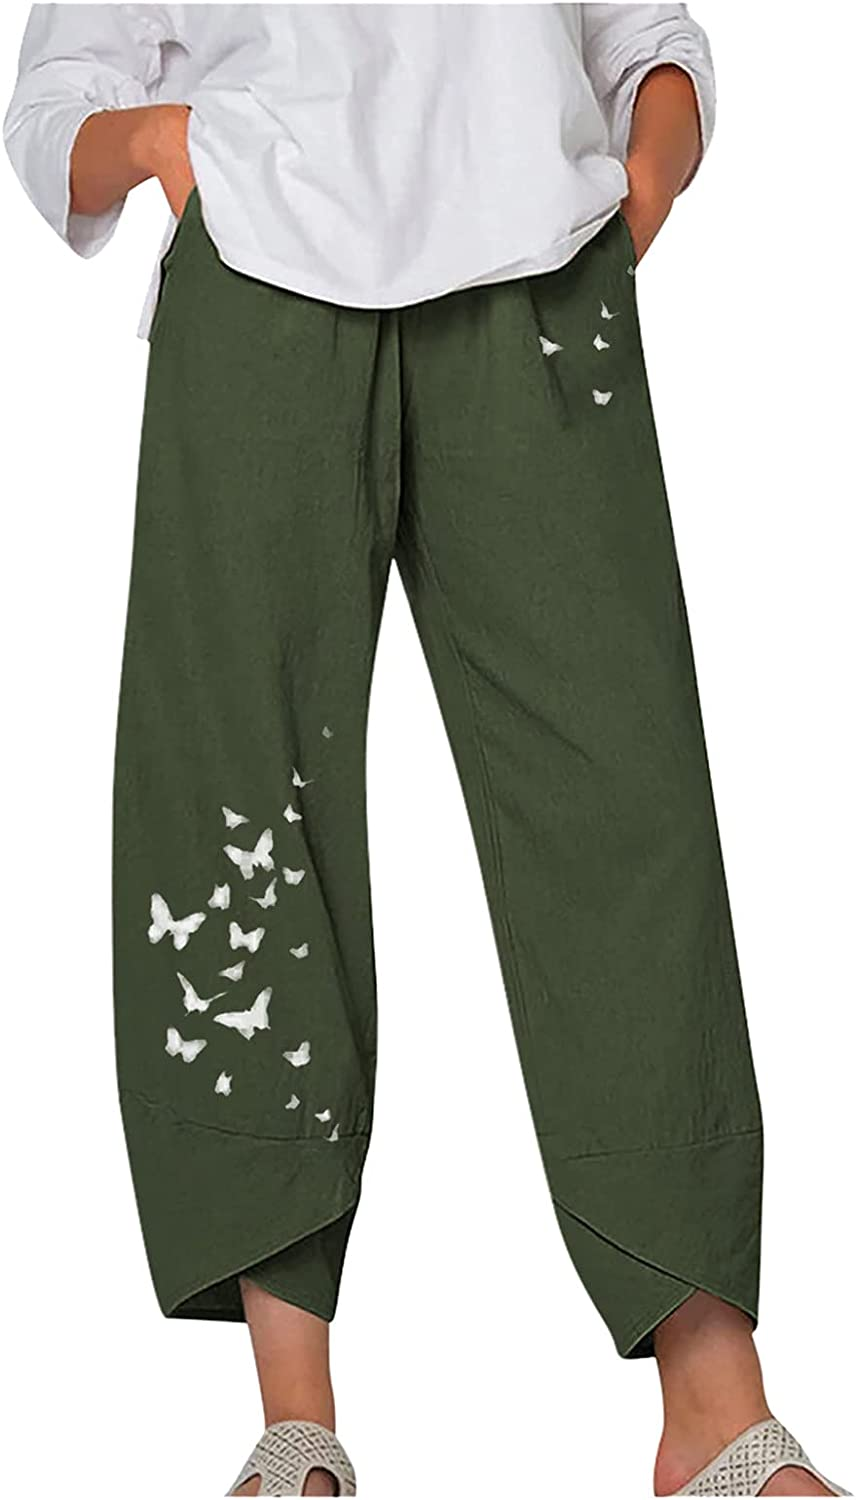 Johtae Industry No. 1 Wide Max 51% OFF Leg Pants for Casual Womens Elast Linen Women